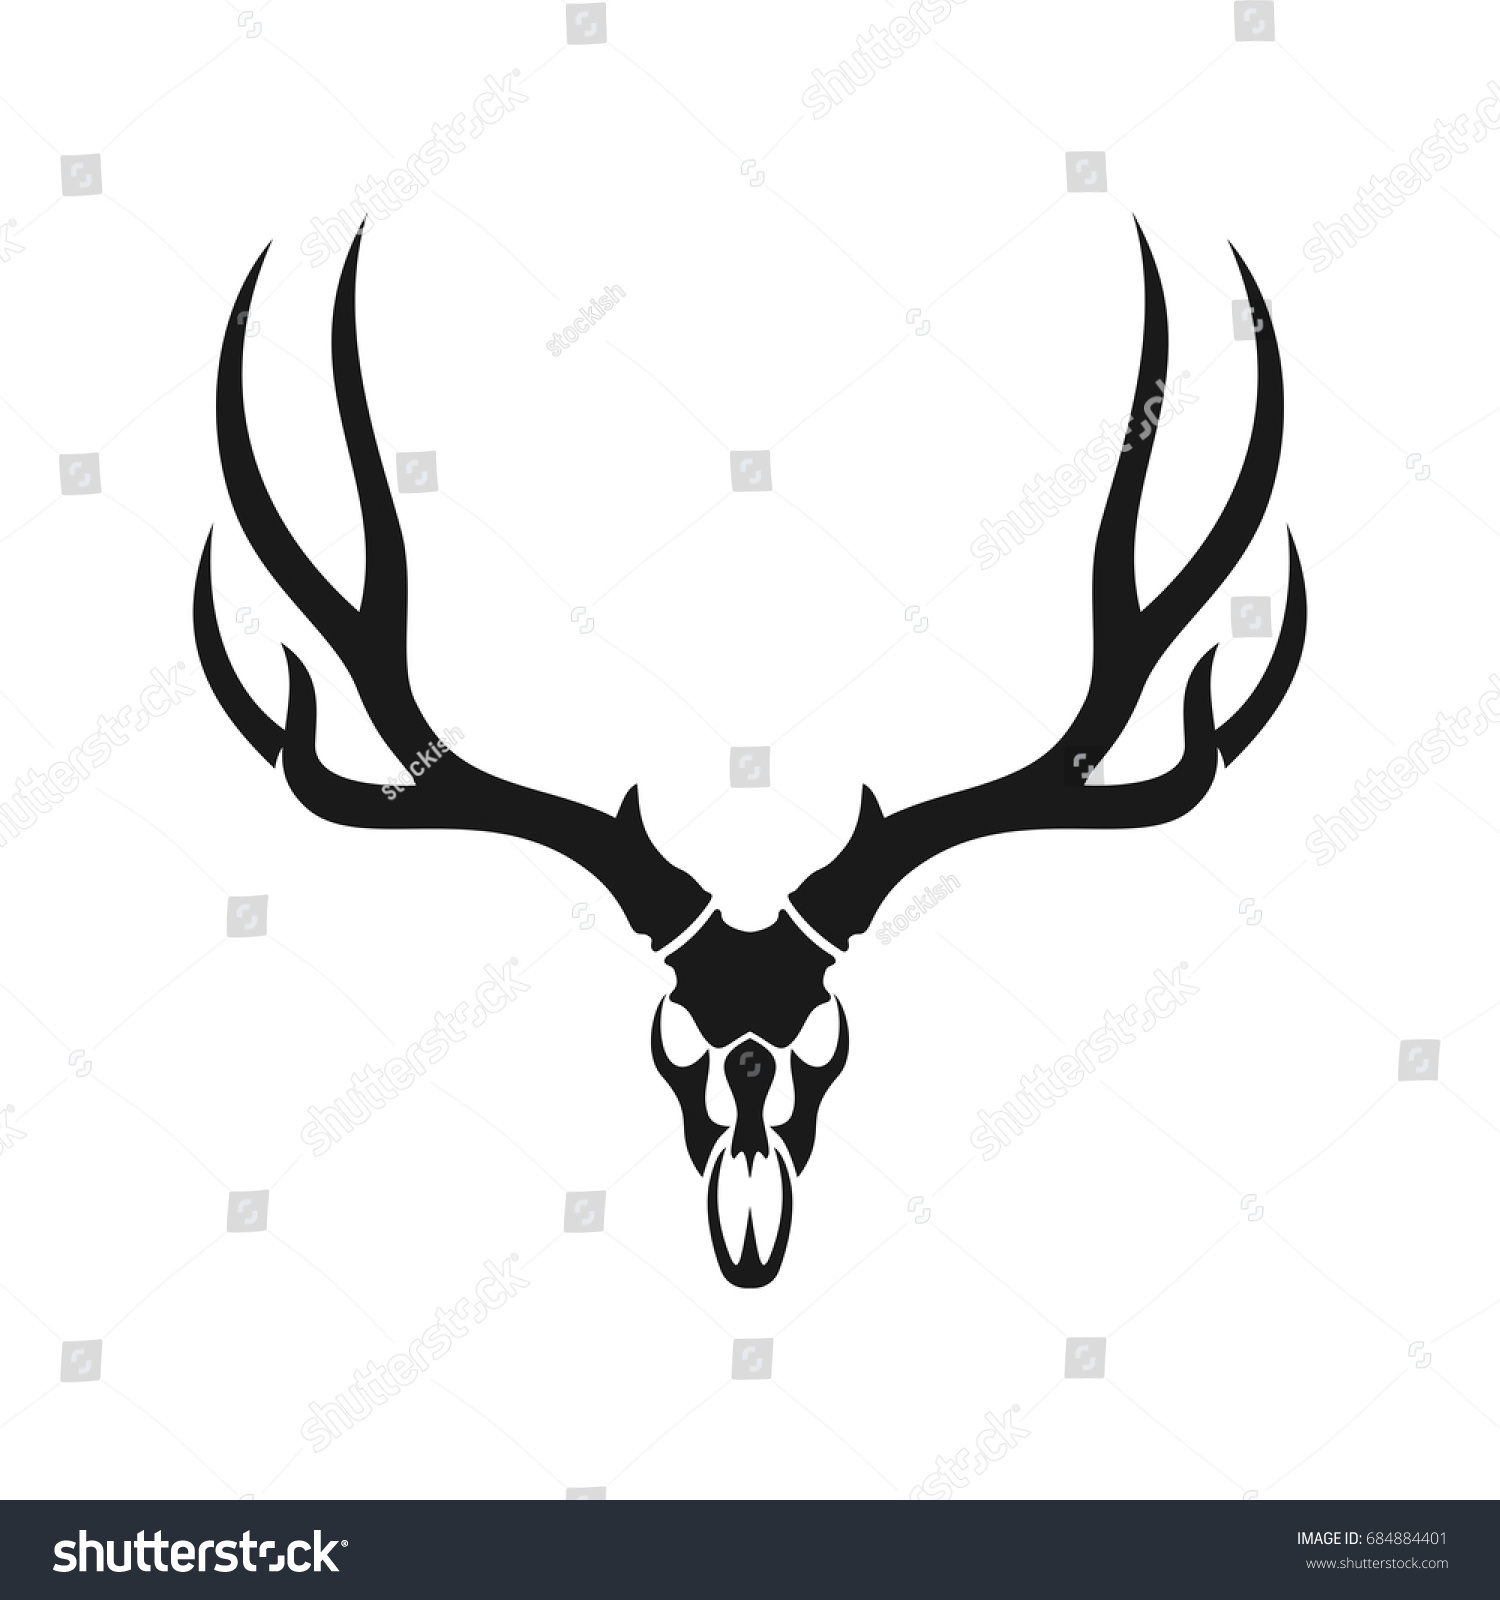 deer skull head vector logo stock vector 684884401 shutterstock rh shutterstock com deer head outline logo deer head logo clothing